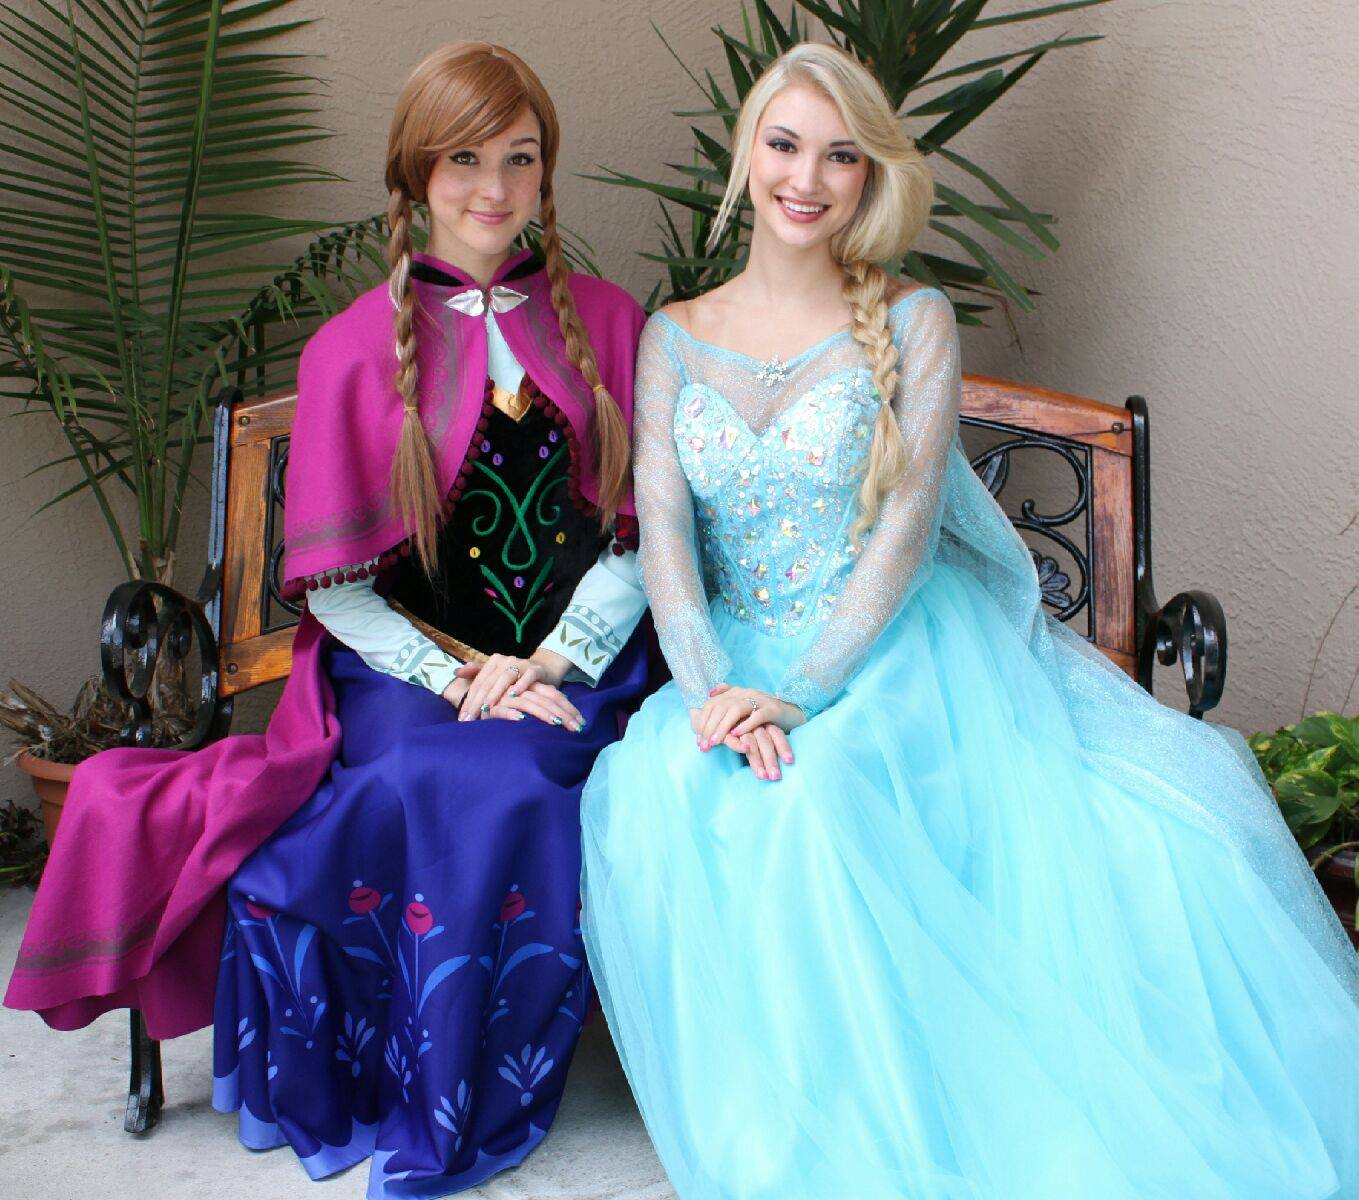 Samantha marie photography to hold frozen mini session volusia samantha marie photography will be hosting a frozen mini session where your child will be able to meet greet elsa anna along with getting photos kristyandbryce Gallery